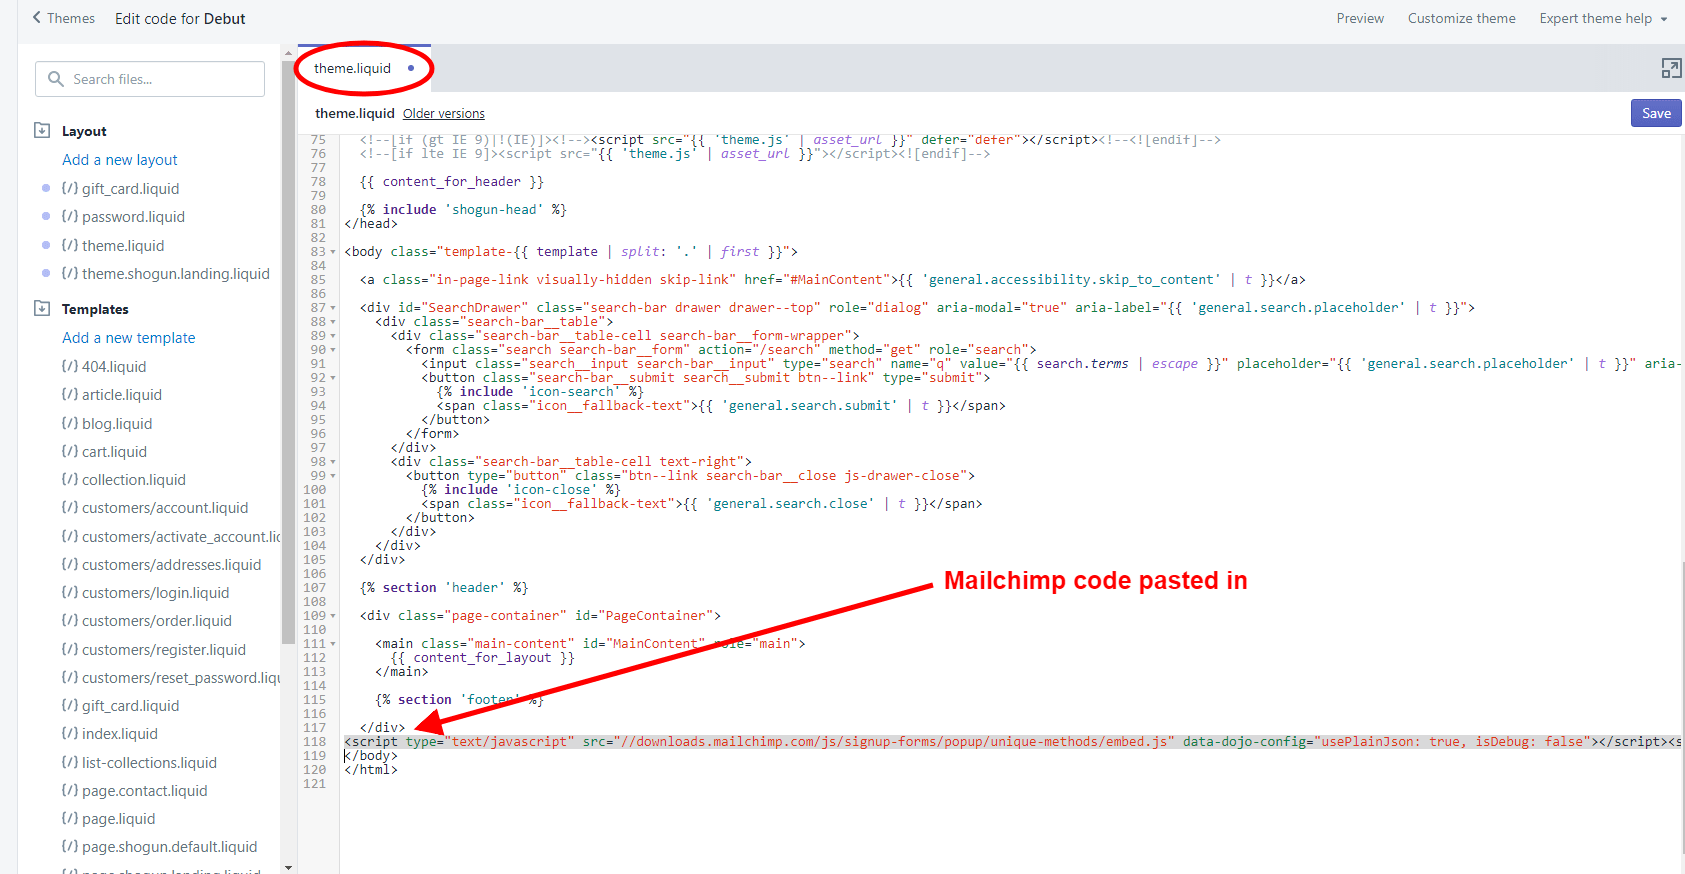 Scroll to the bottom of the code and you'll paste in the Mailchimp popup code right before the </body> tag